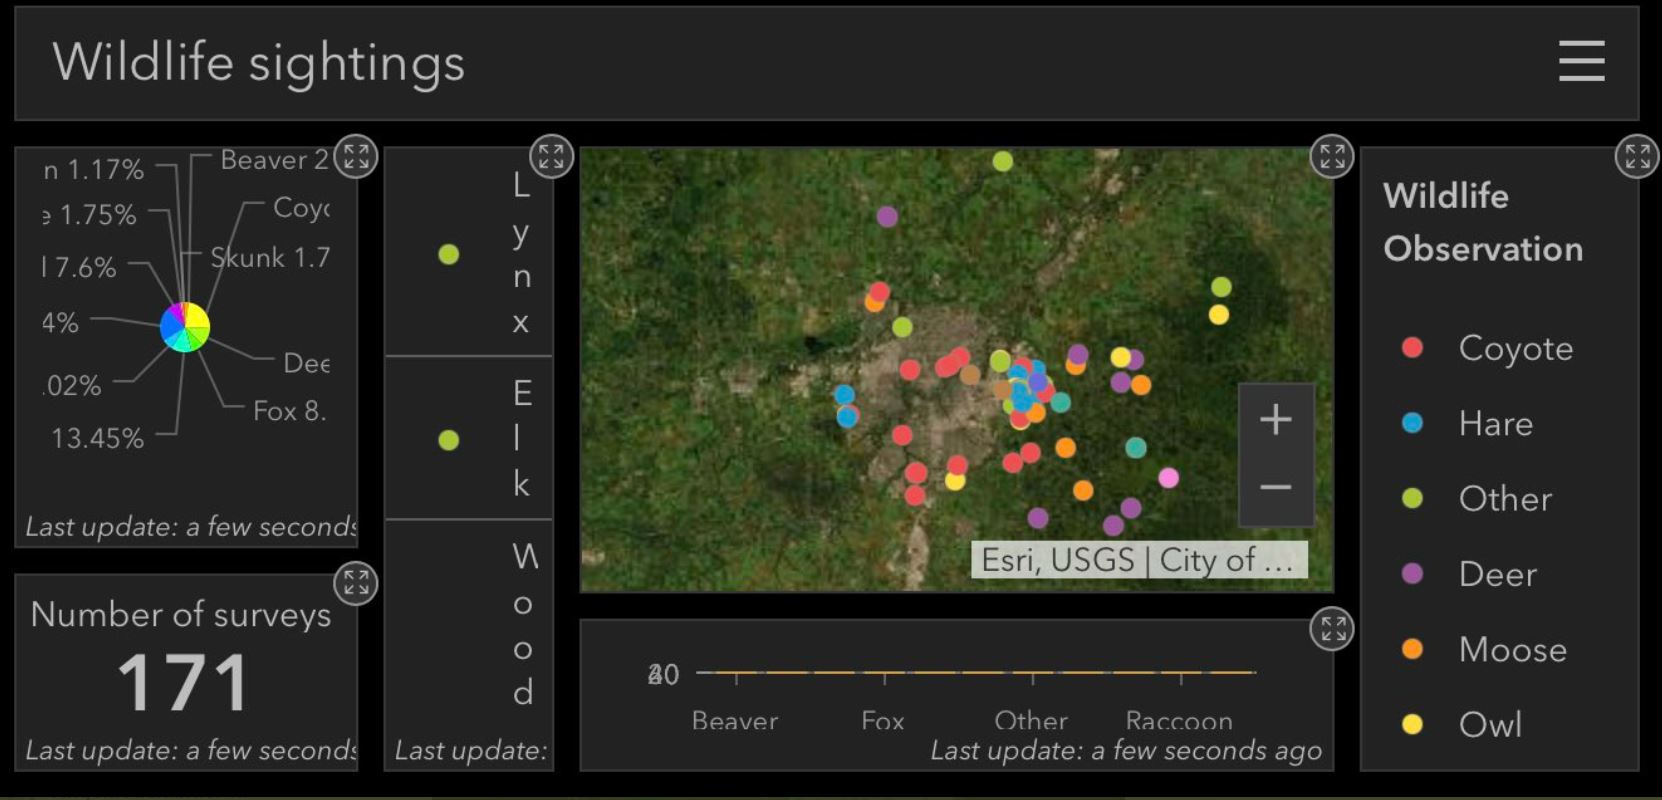 A dashboard showing wildlife sightings in an area in Canada.